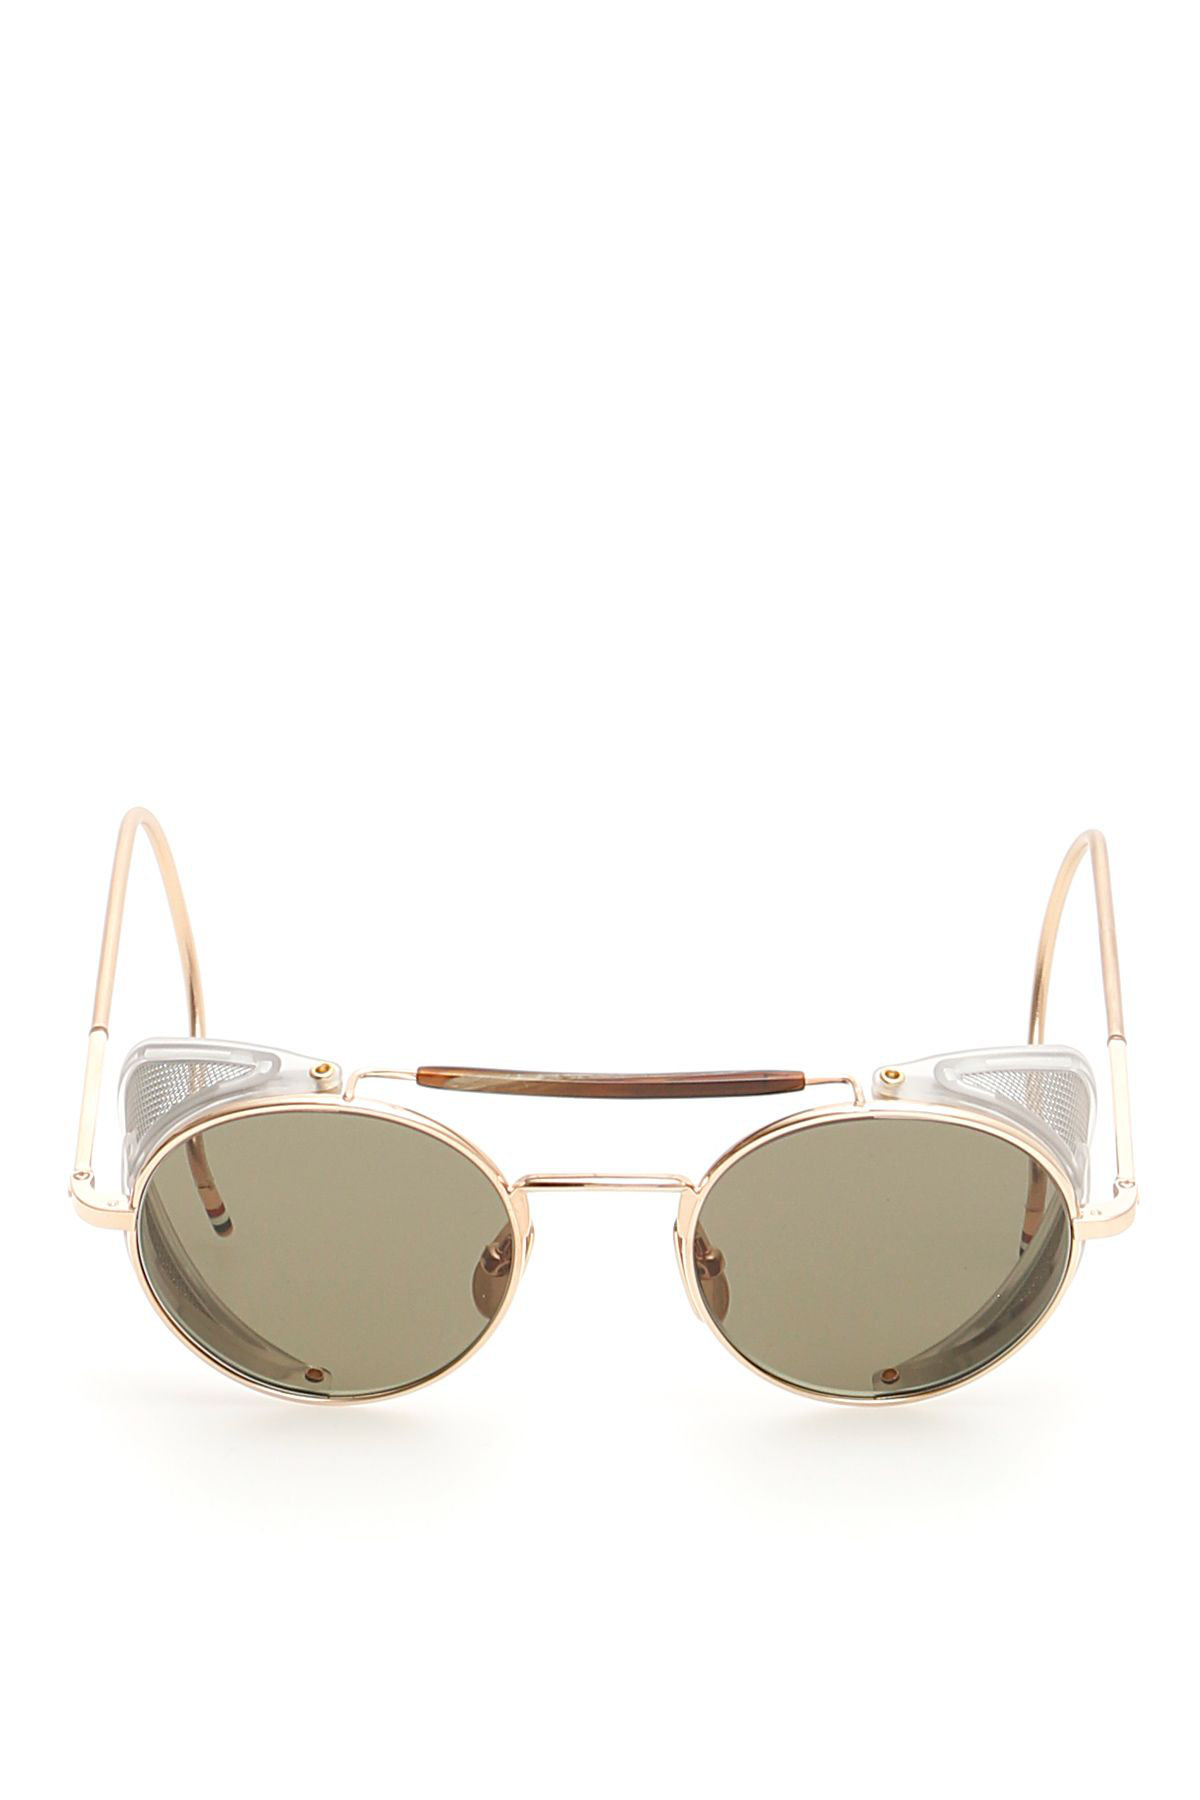 834a545a0023 Thom Browne Unisex Tb-001 Sunglasses In Shiny 12K Gold